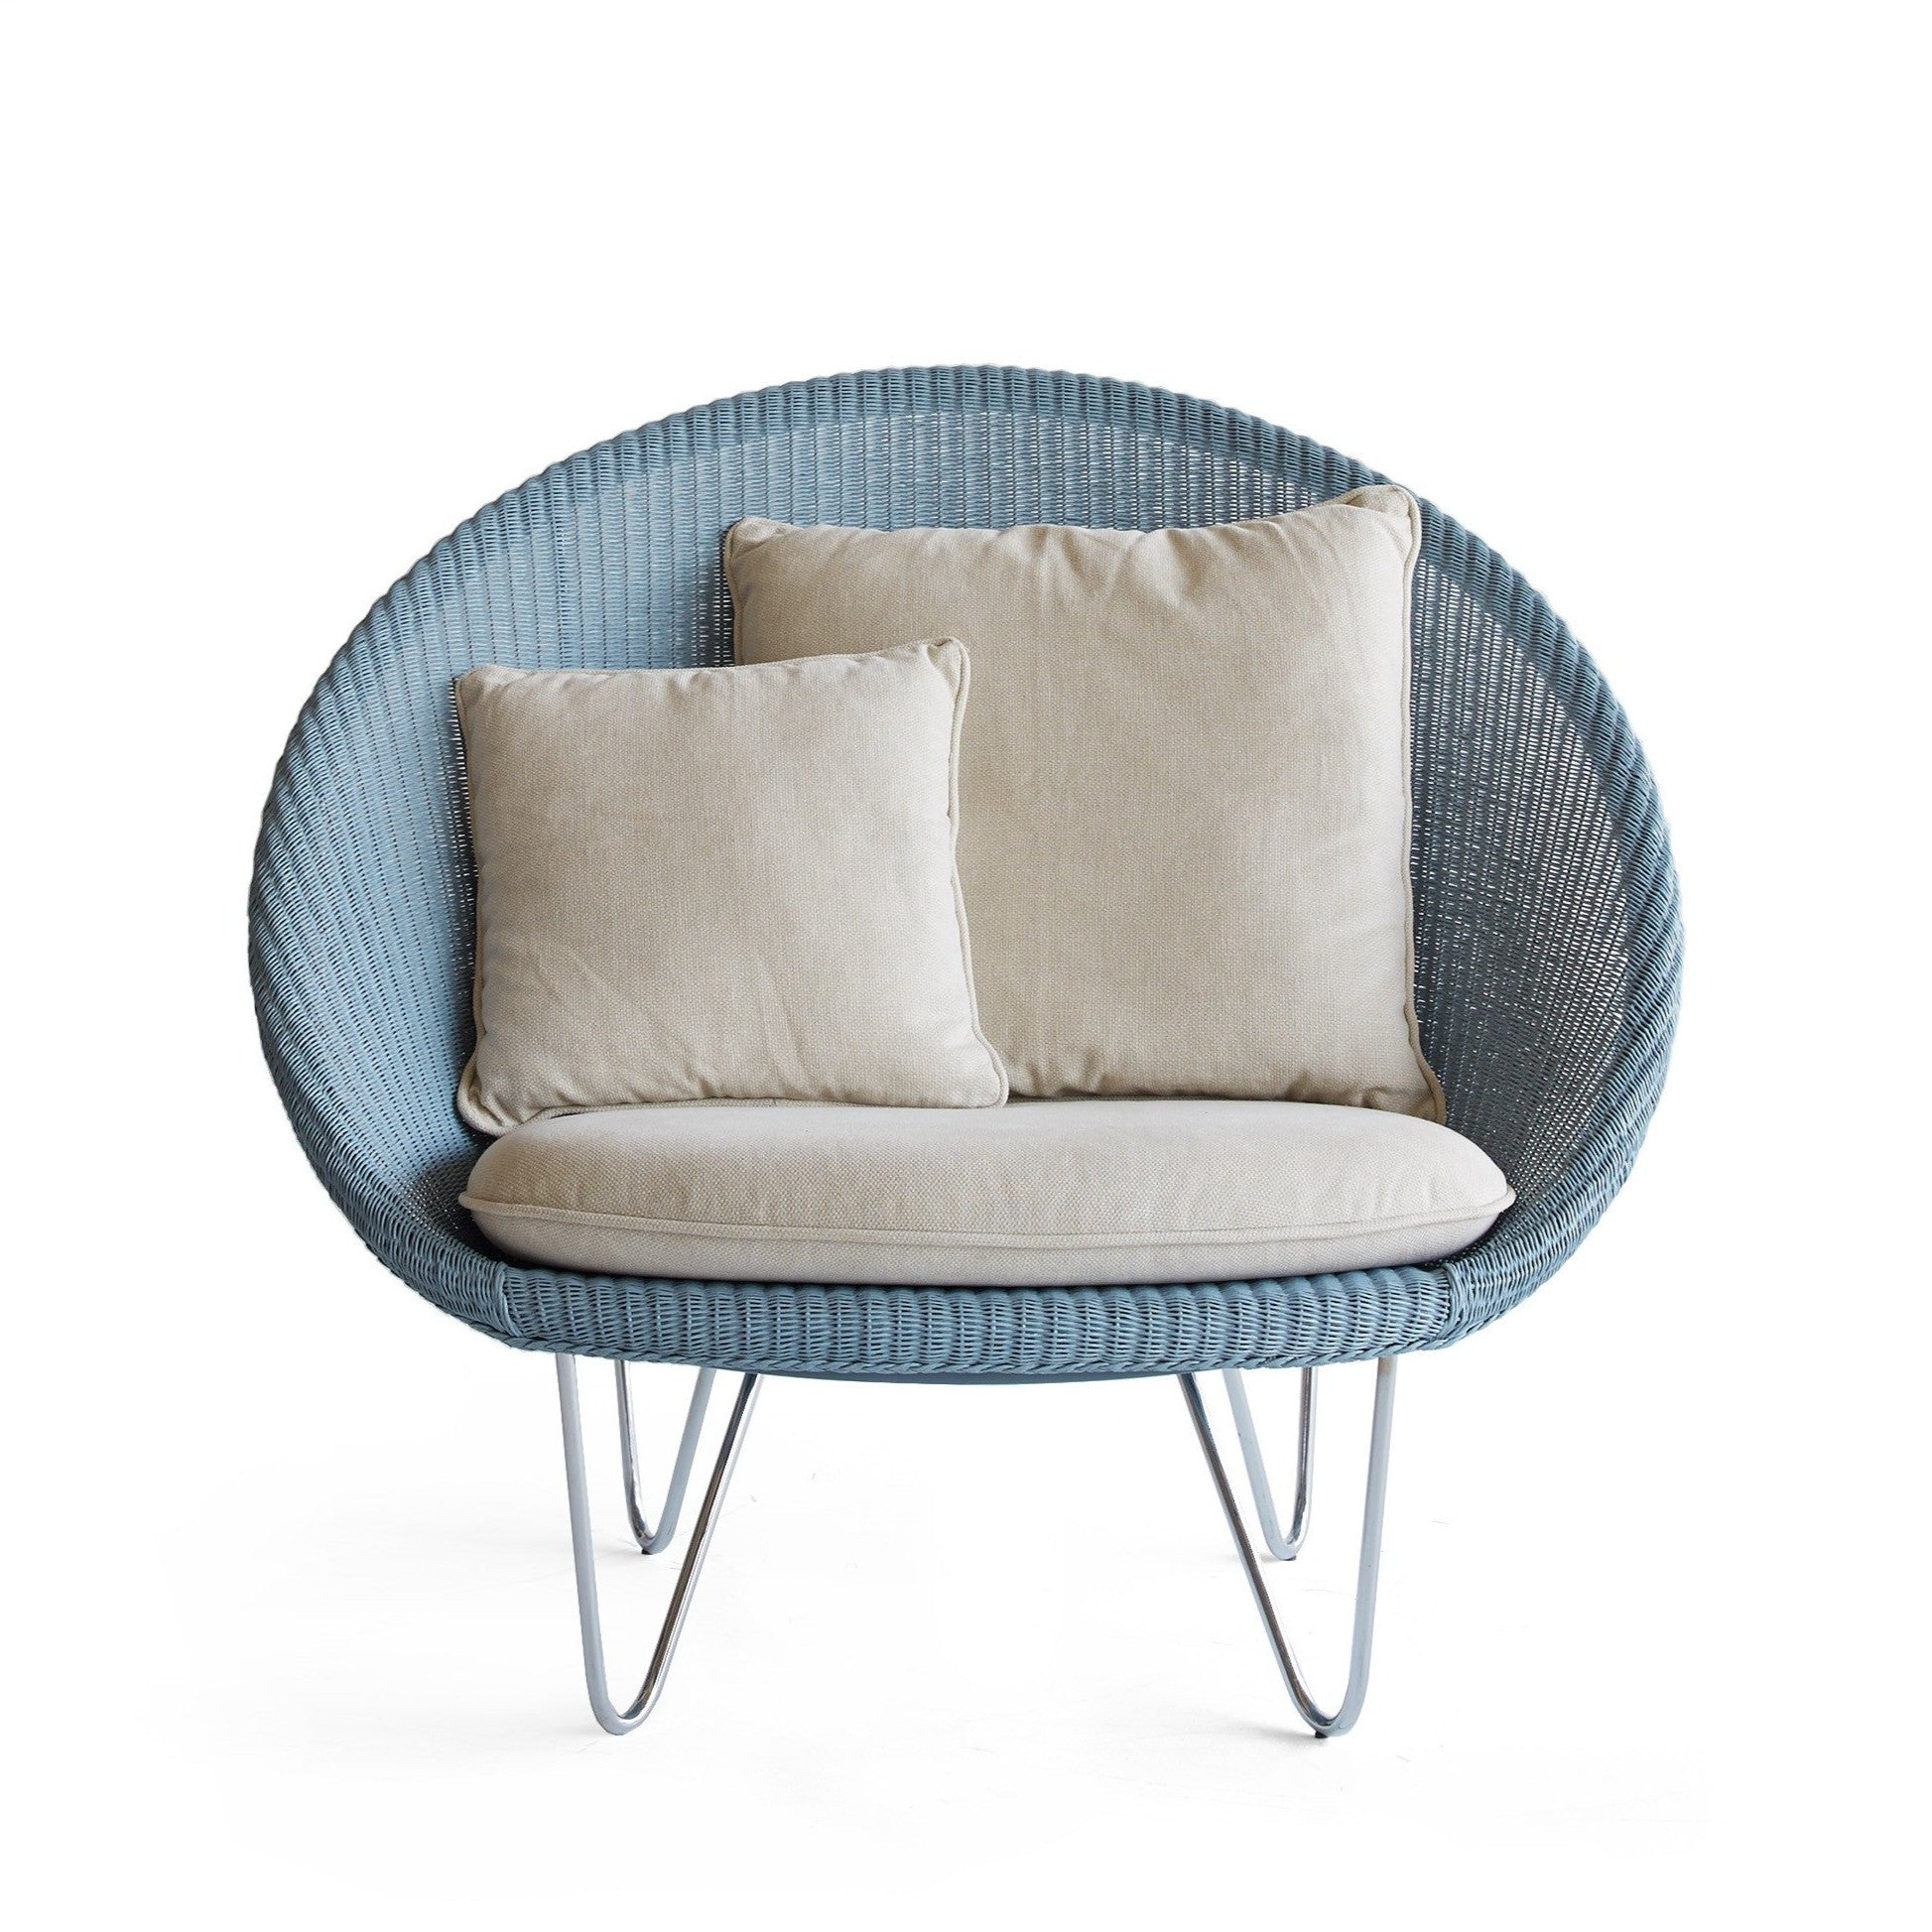 Joe Cocoon Chair | Lagoon MW - Vincent Sheppard - Originals Furniture - Singapore - 1